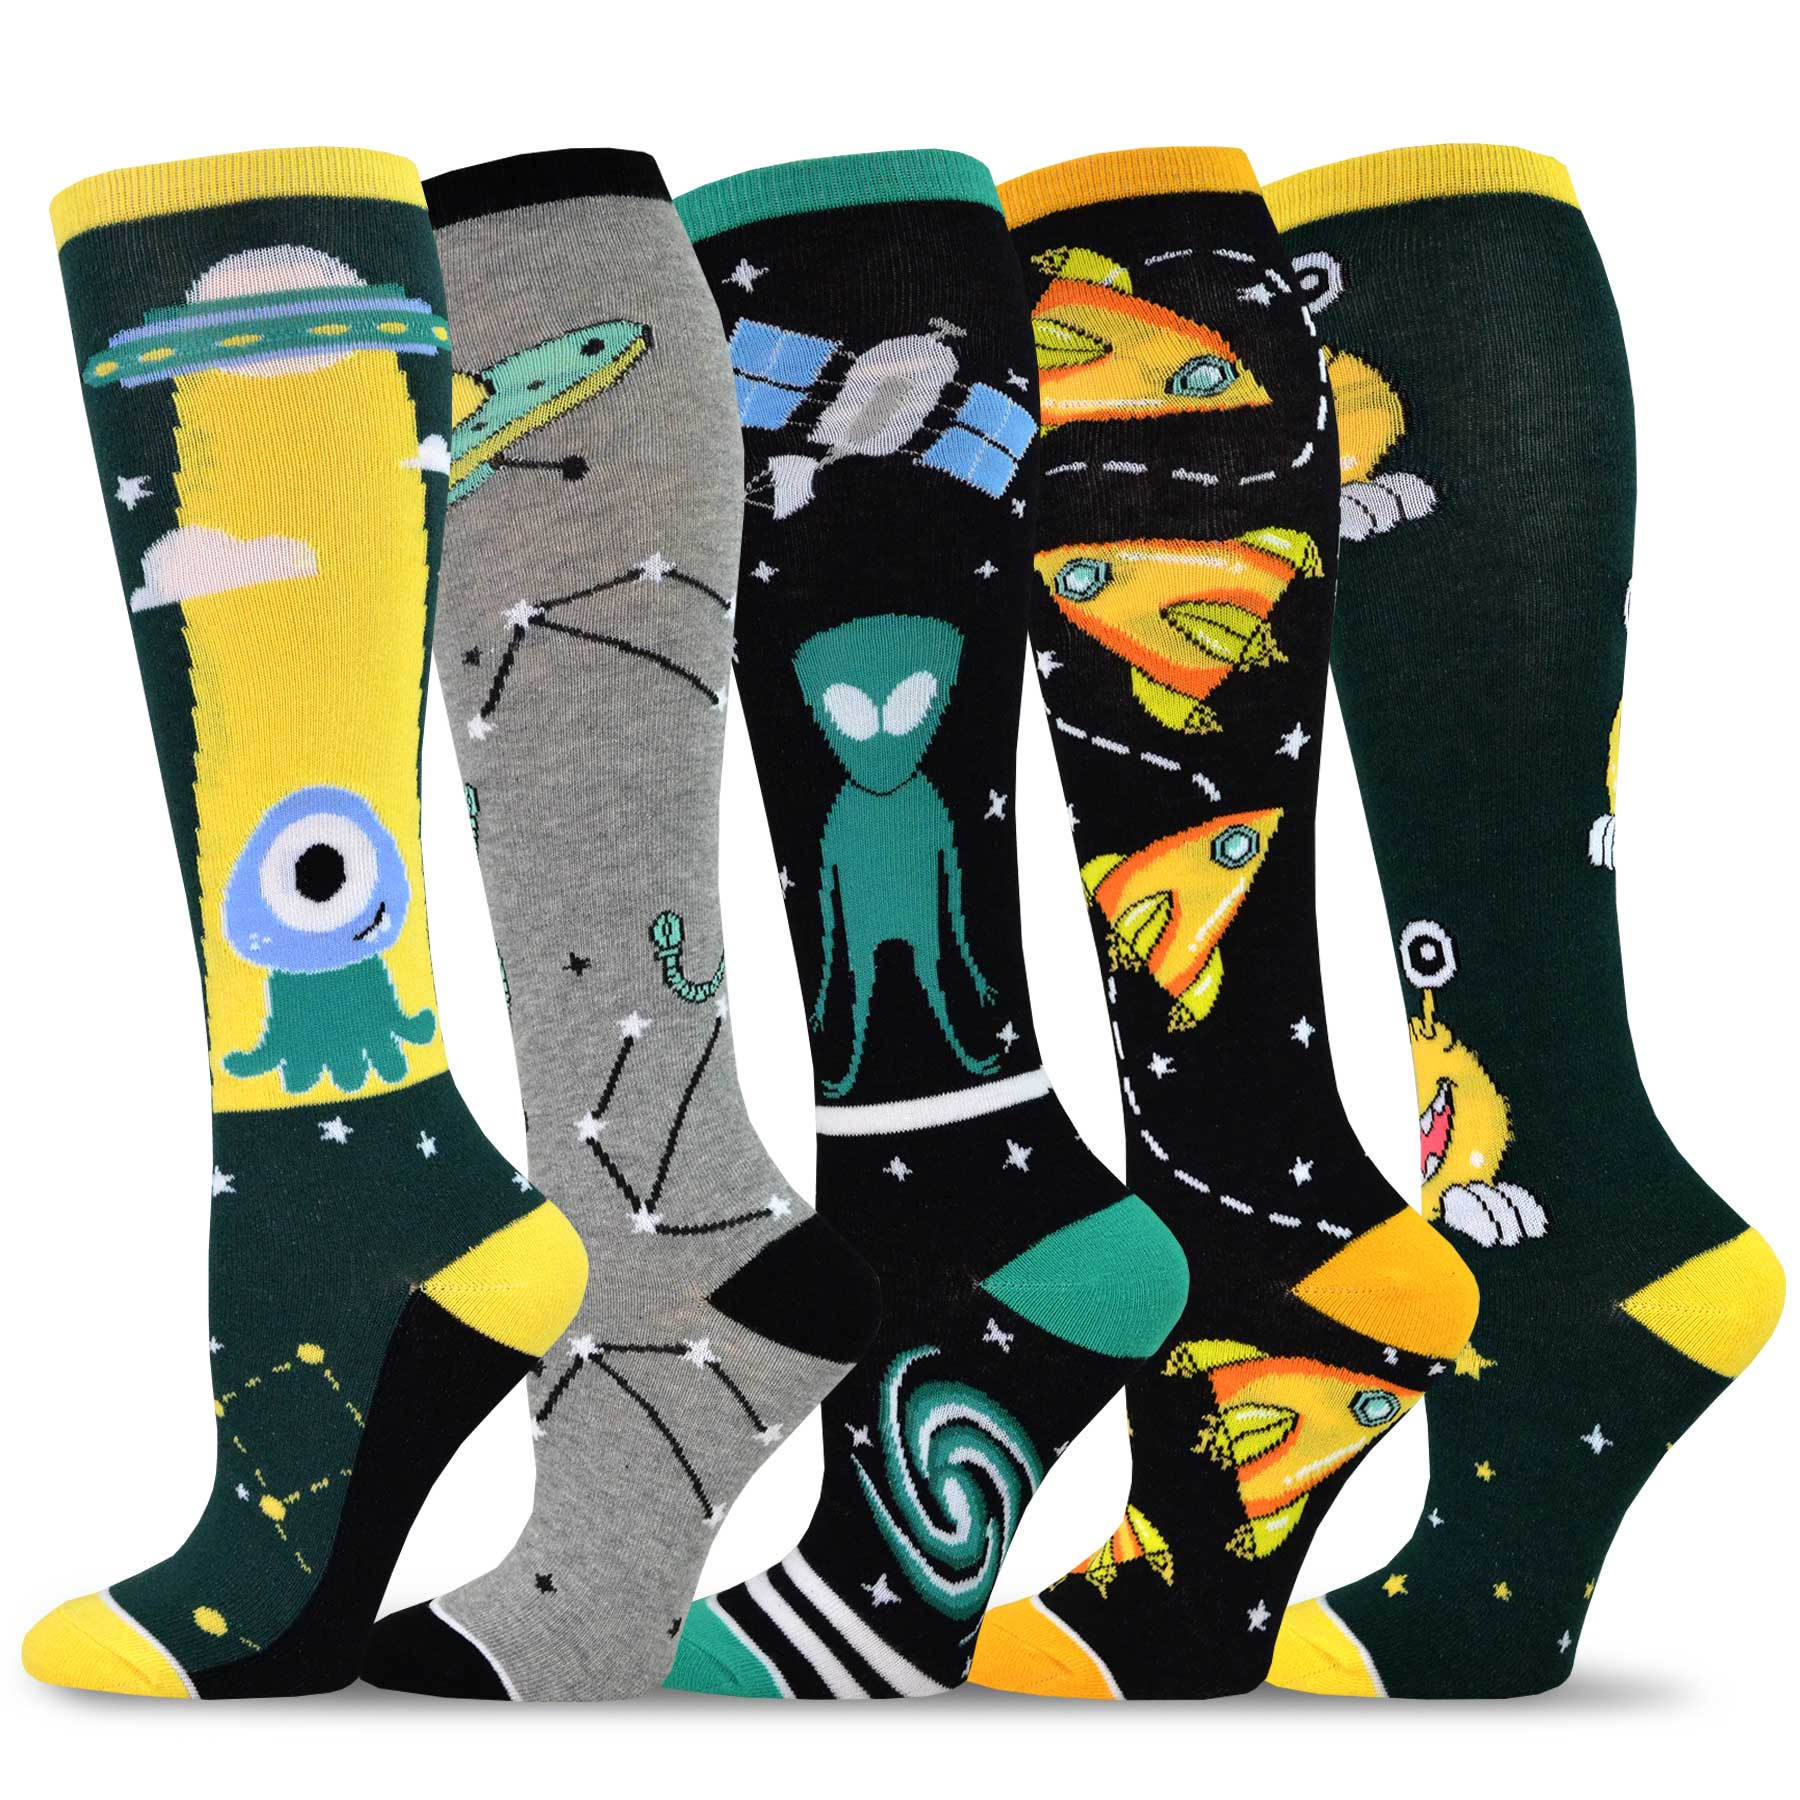 8b75b3a6e2e Soxnet Inc Wholesale Quality Socks